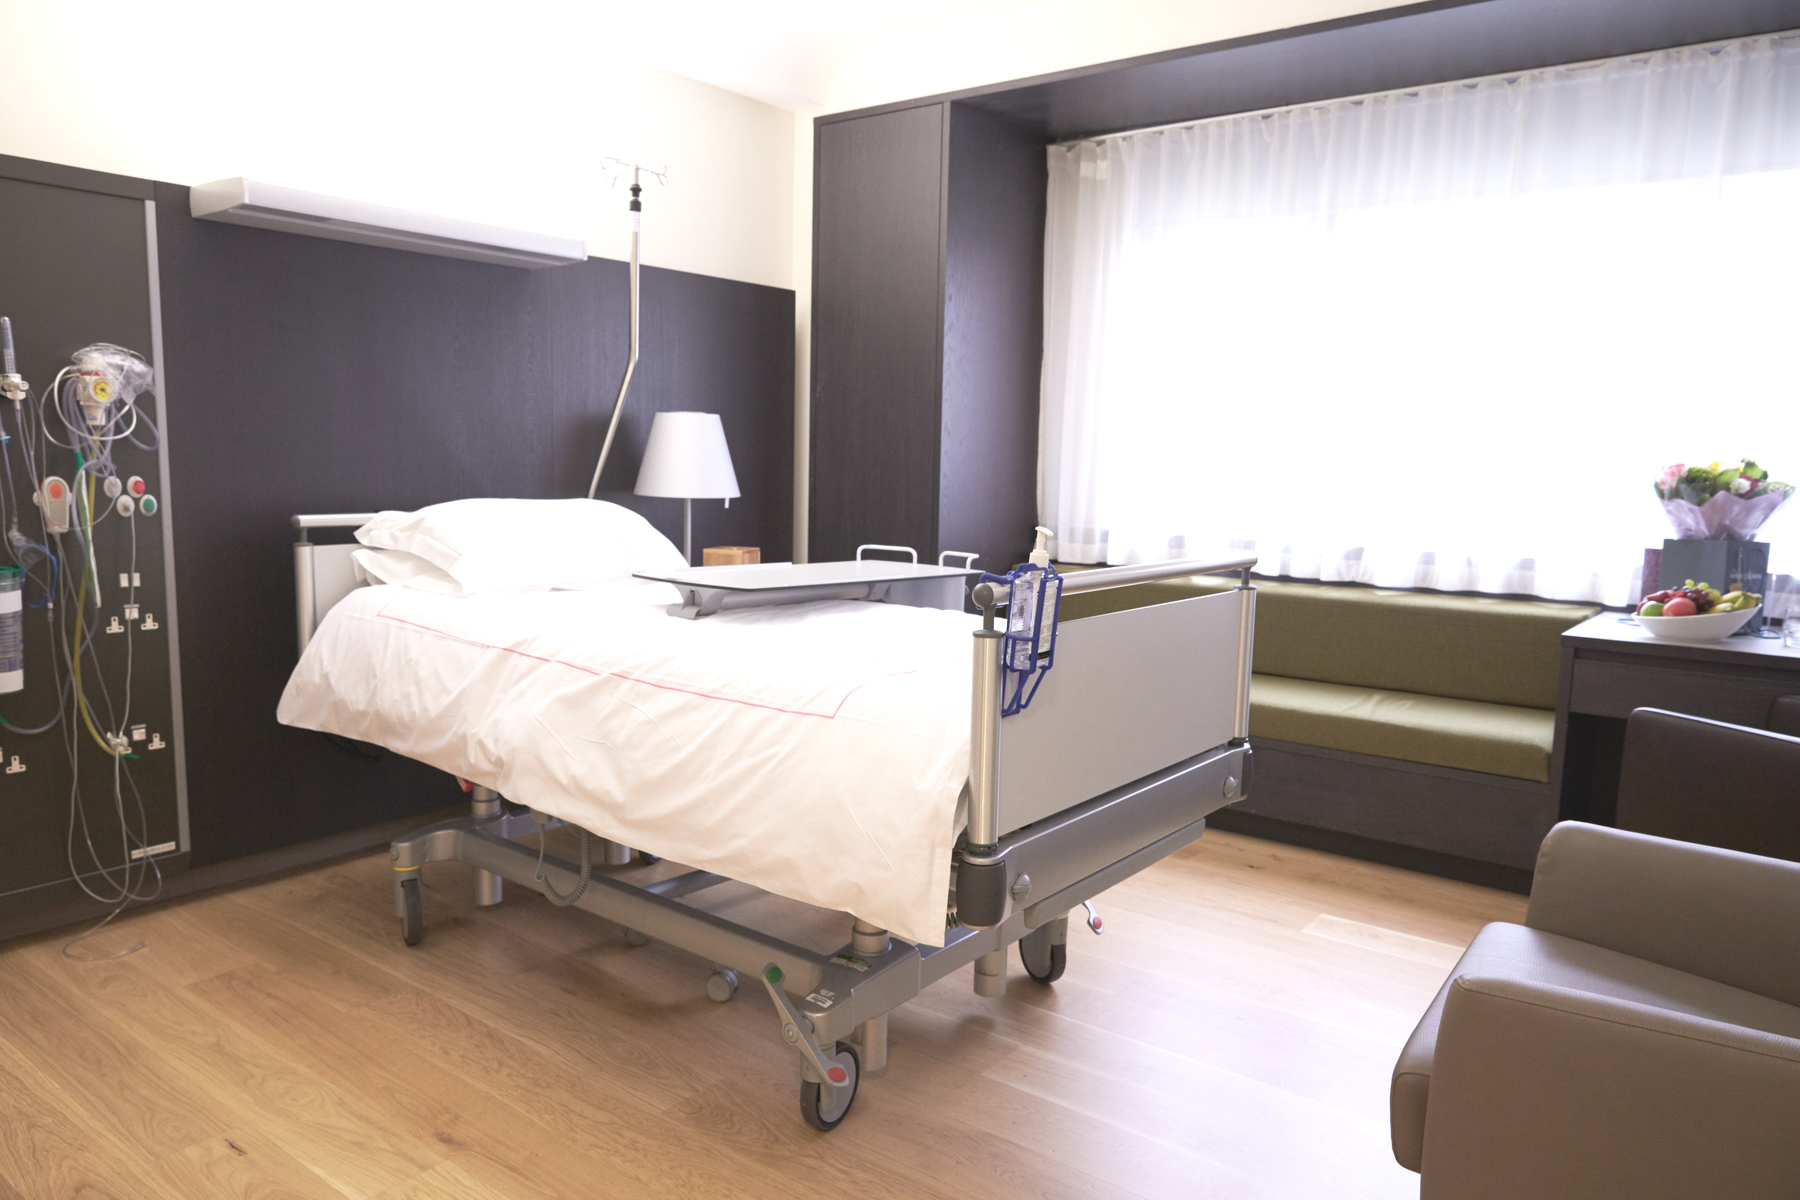 Business Lessons From the Luxury Hospital Industry